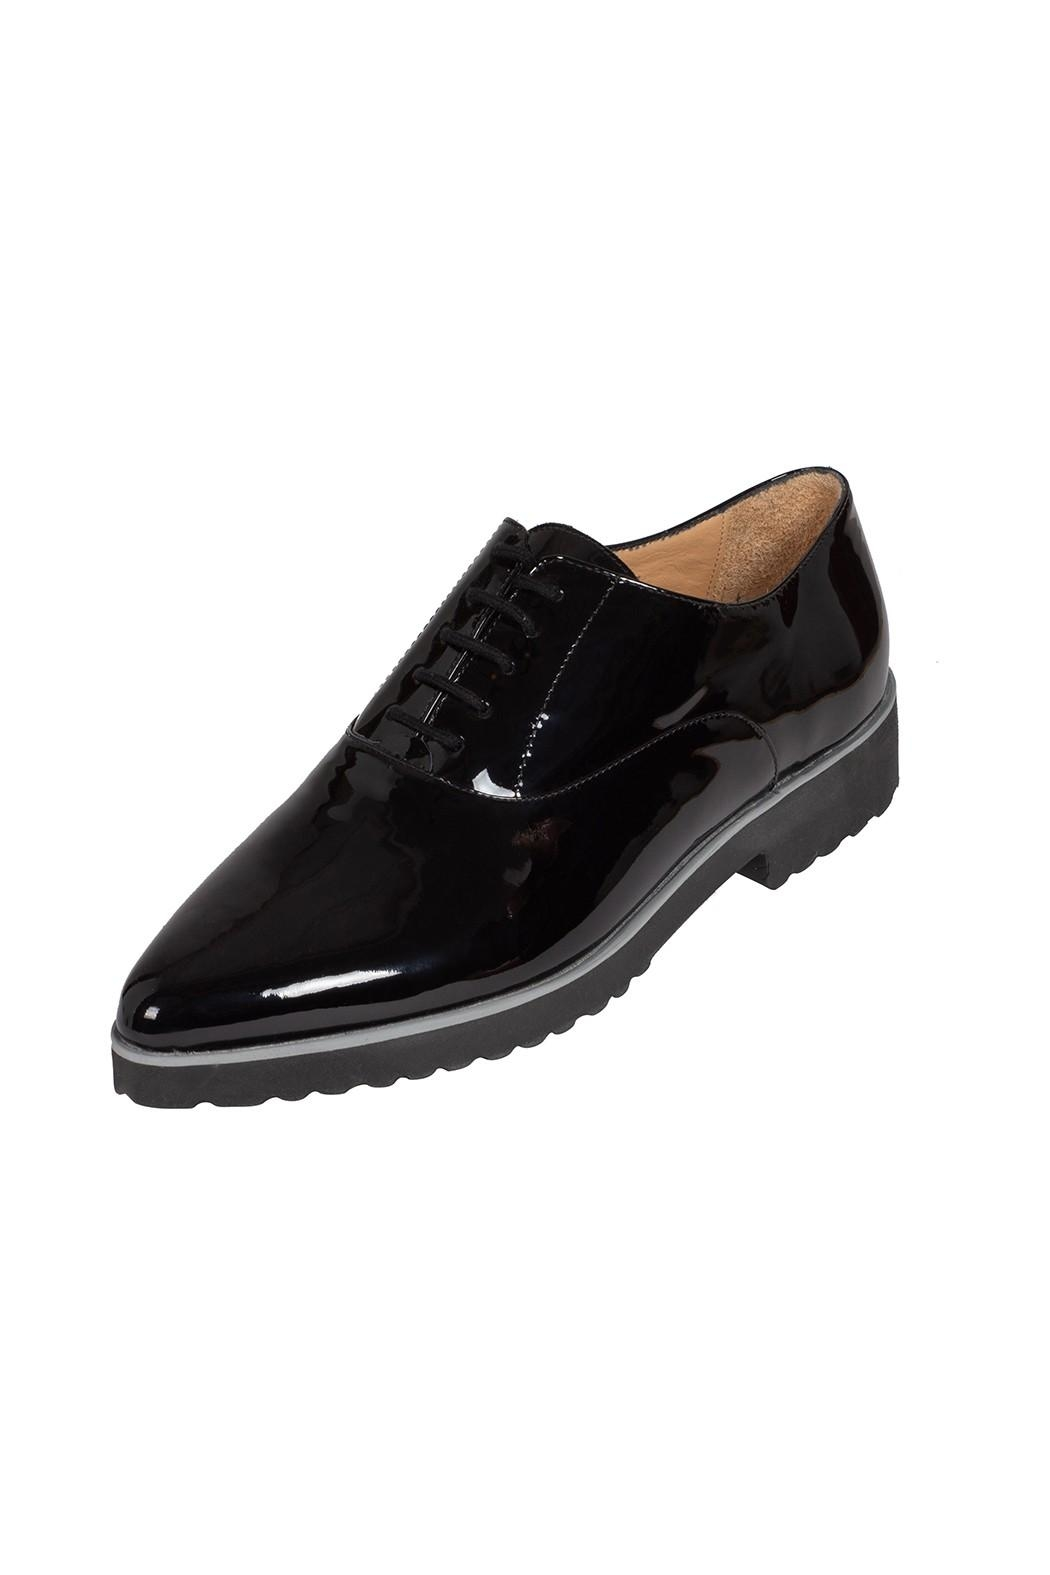 Pascucci Patent-Leather, Black, Brogues - Front Full Image